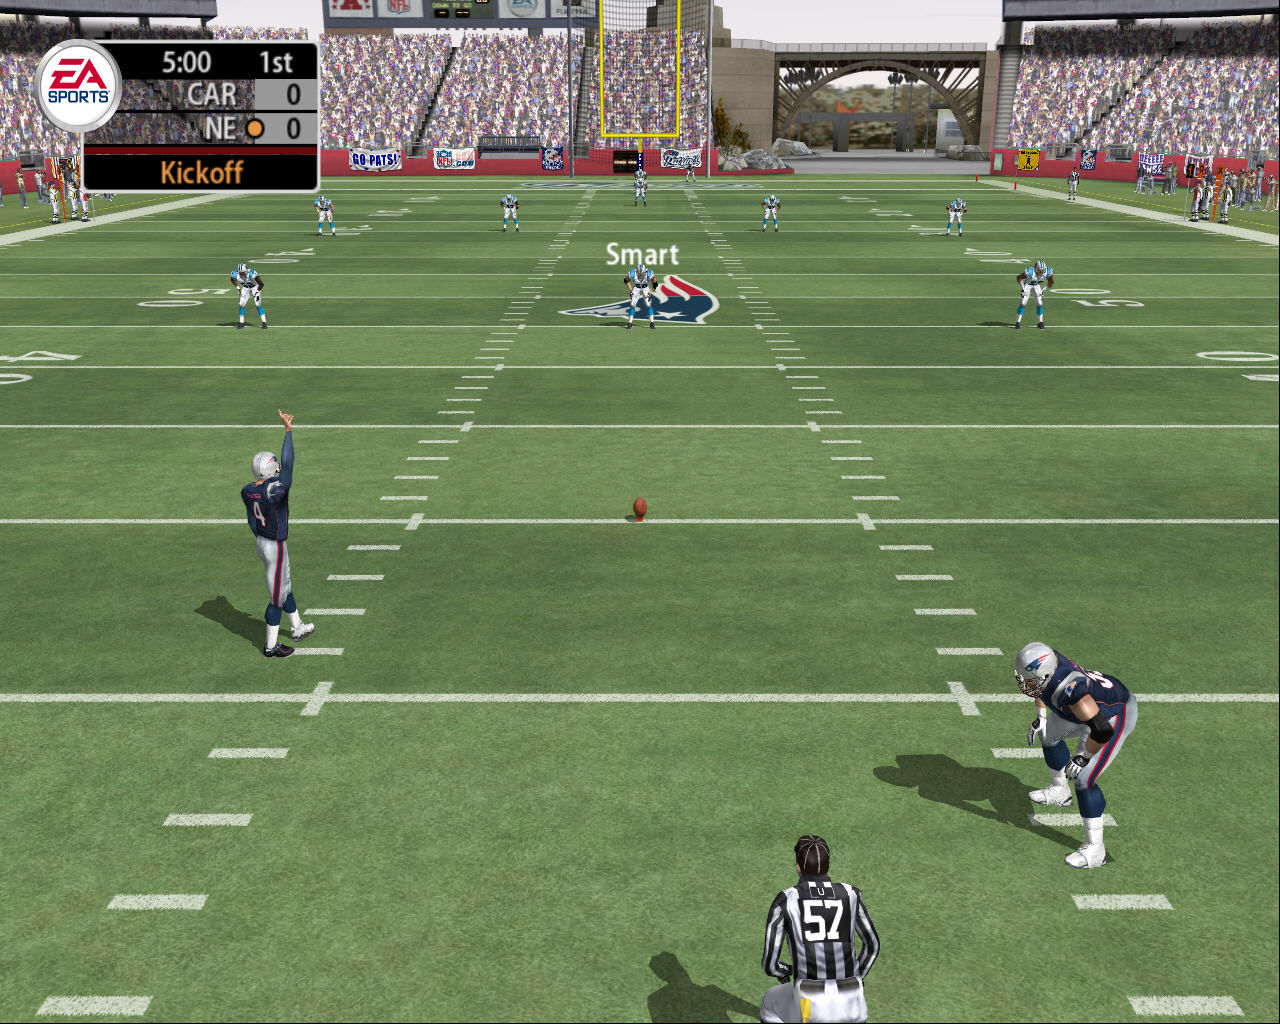 Madden NFL 2005 Windows The player gives a sign that he is ready to perform the opening kick.